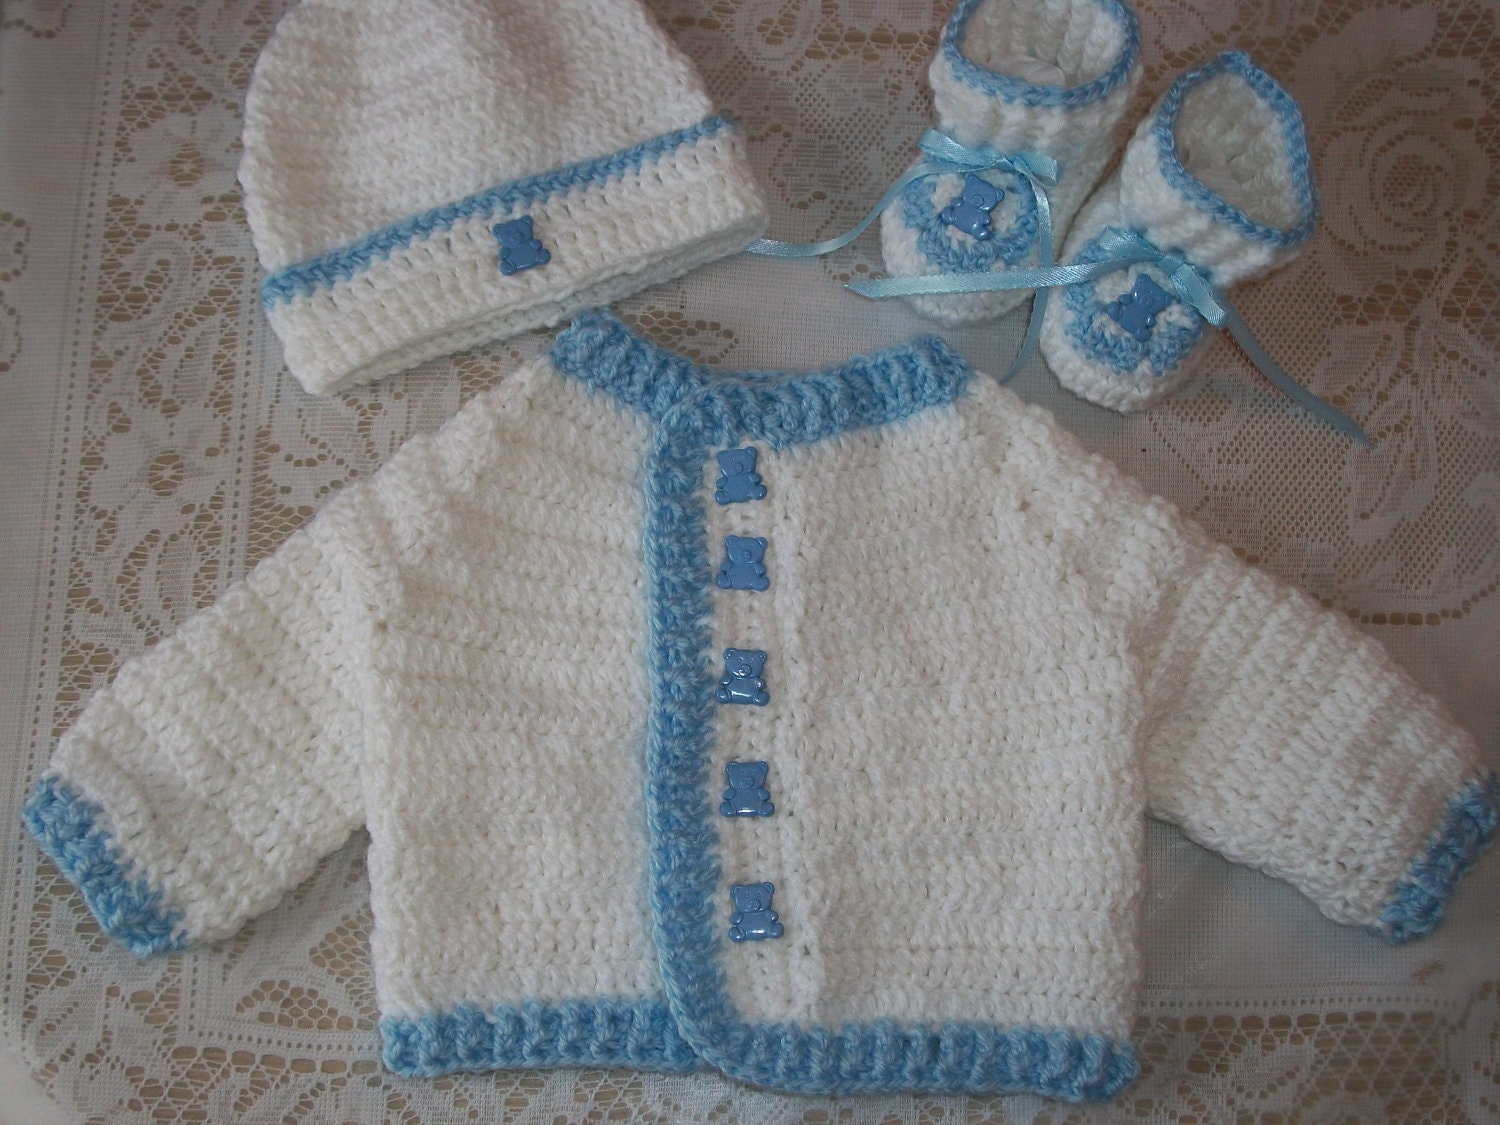 Crochet Baby Boy Sweater Free Patterns : Crochet Baby Boy Sweater Set Perfect Baby by ...